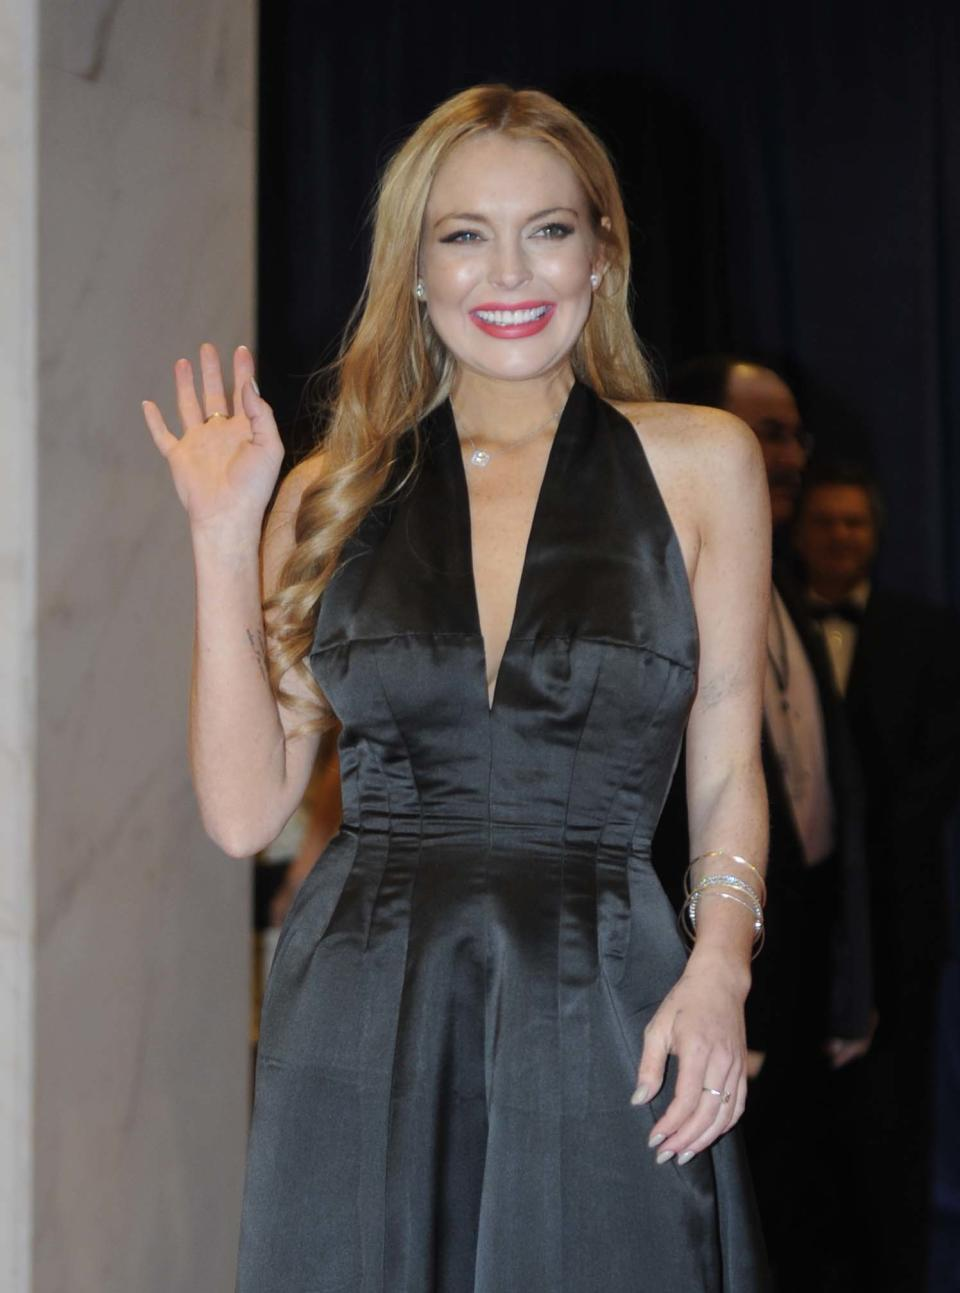 Actress Lindsay Lohan arrive at the White House Correspondents' Association Dinner on Saturday, April 28, 2012, in Washington.  (AP Photo/Kevin Wolf)